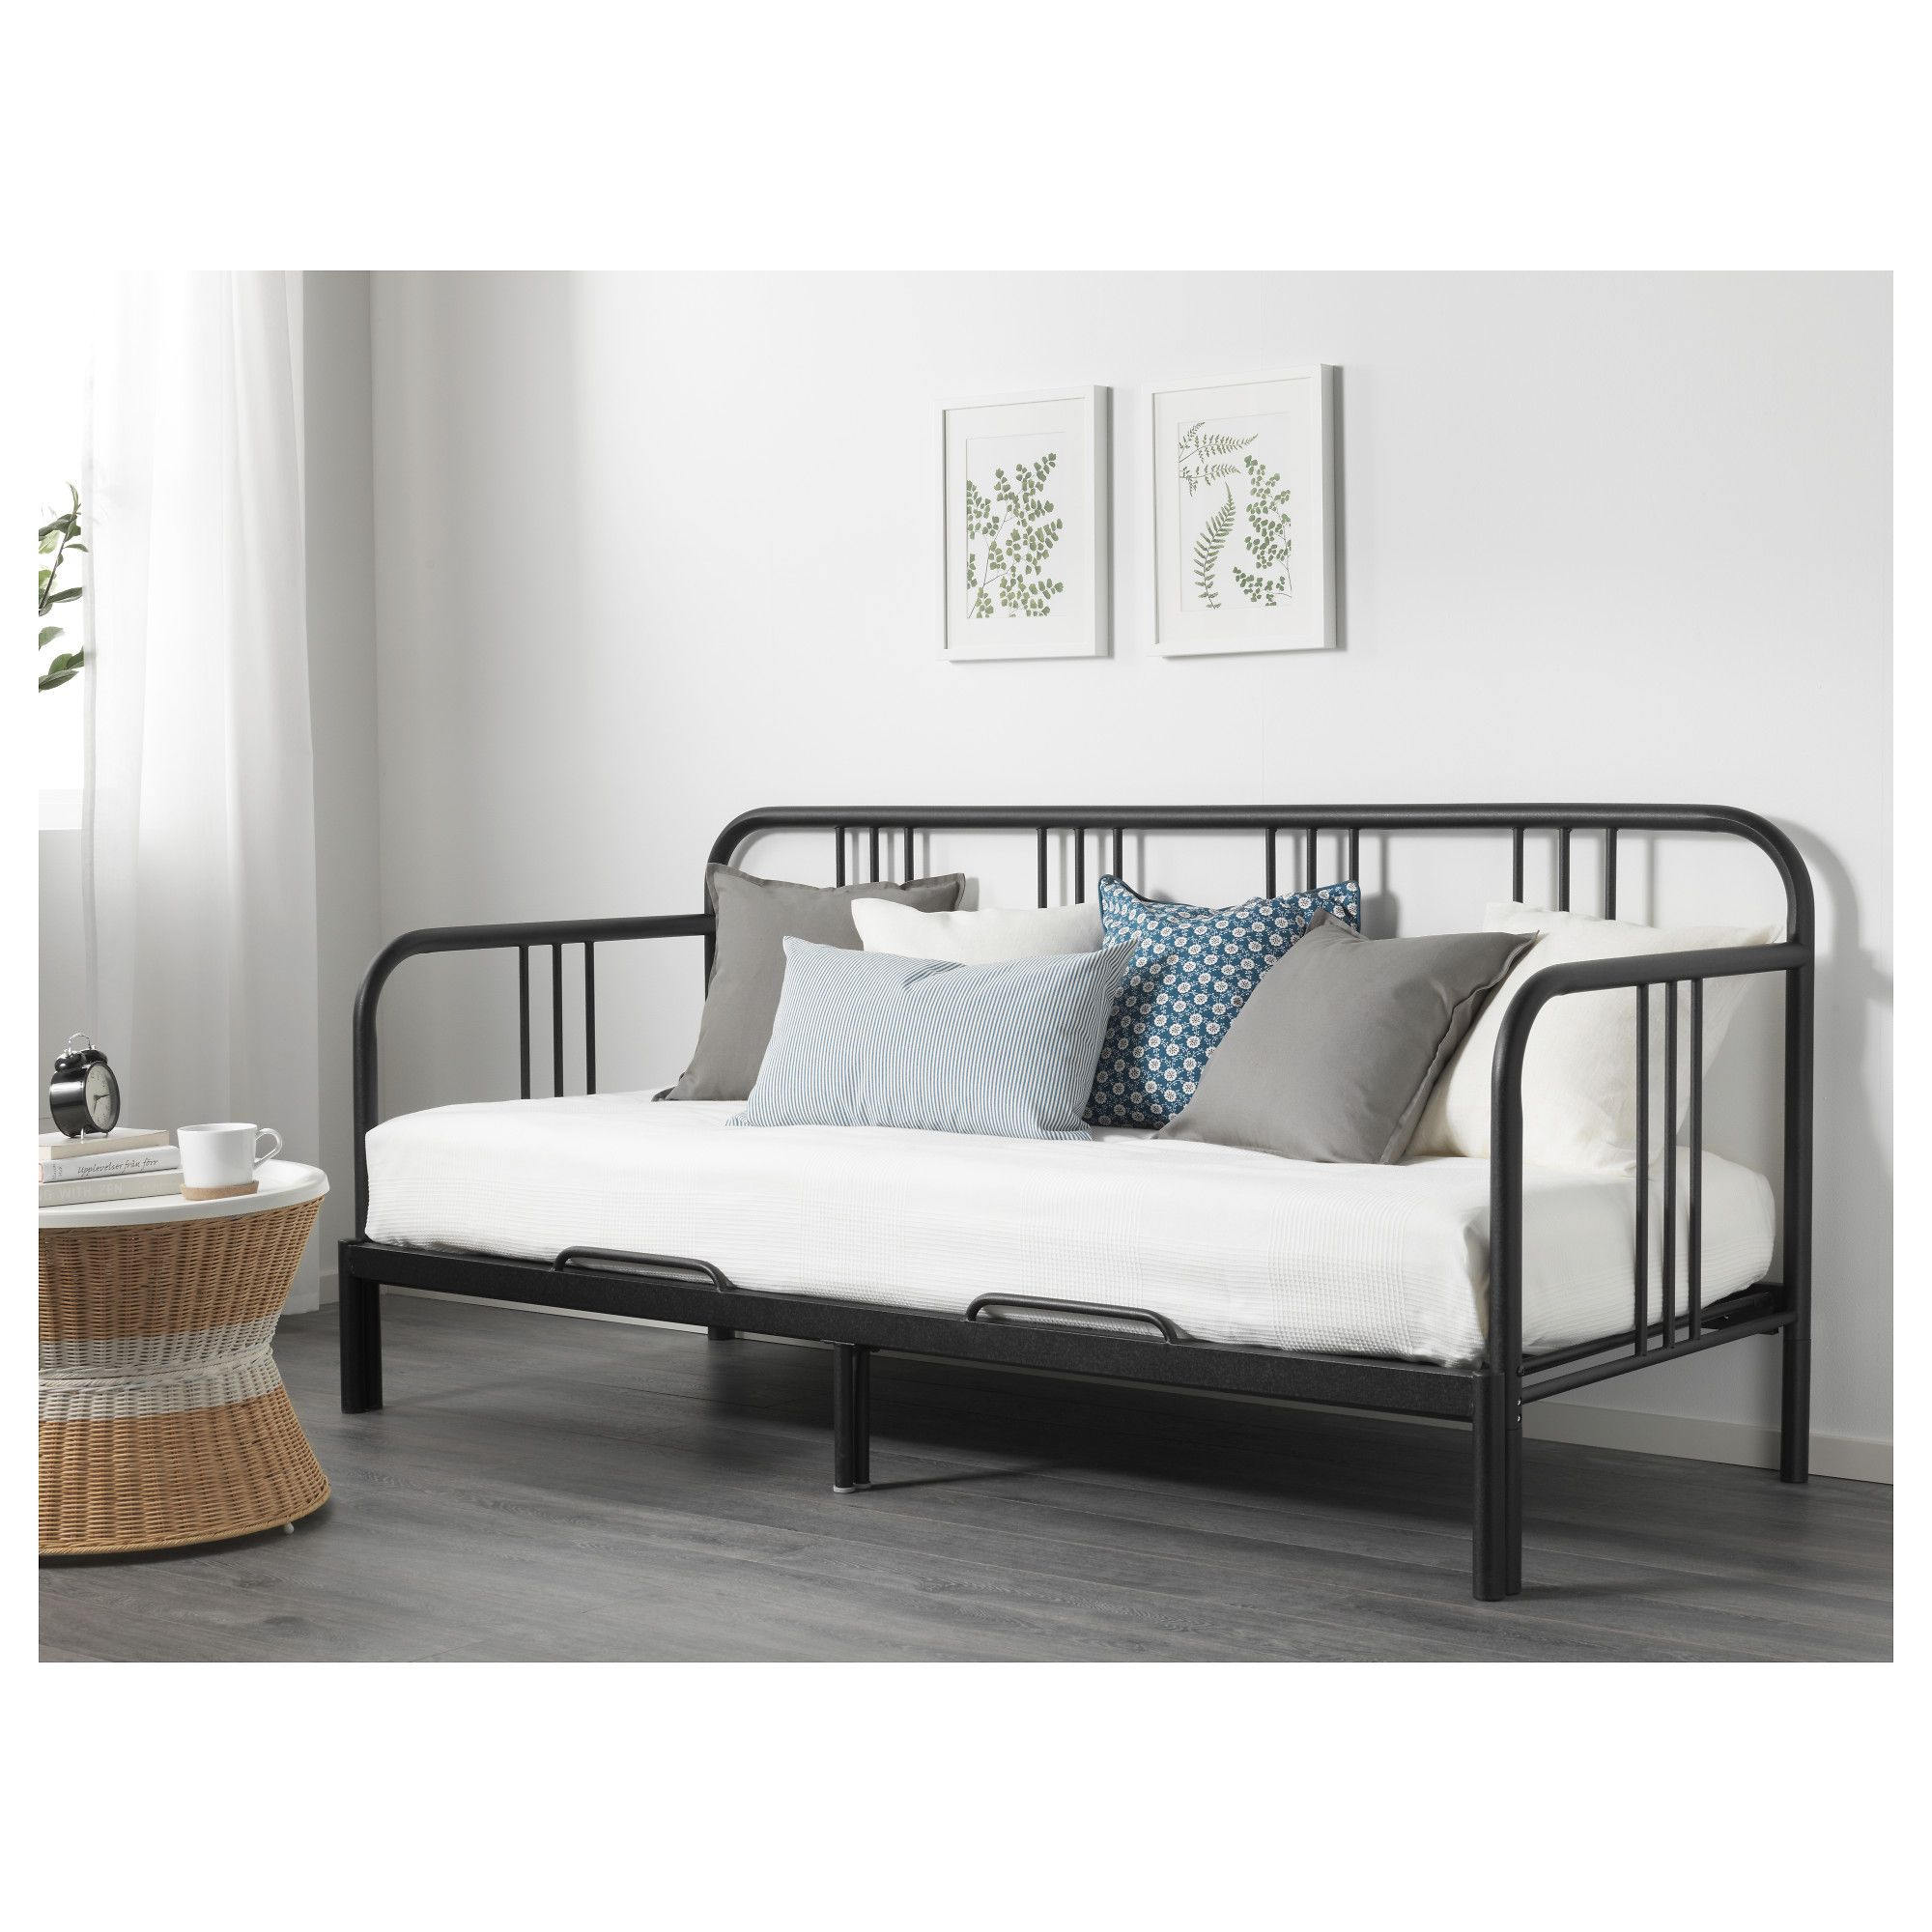 FYRESDAL Day bed with 2 mattresses Black moshult firm 80x200 cm